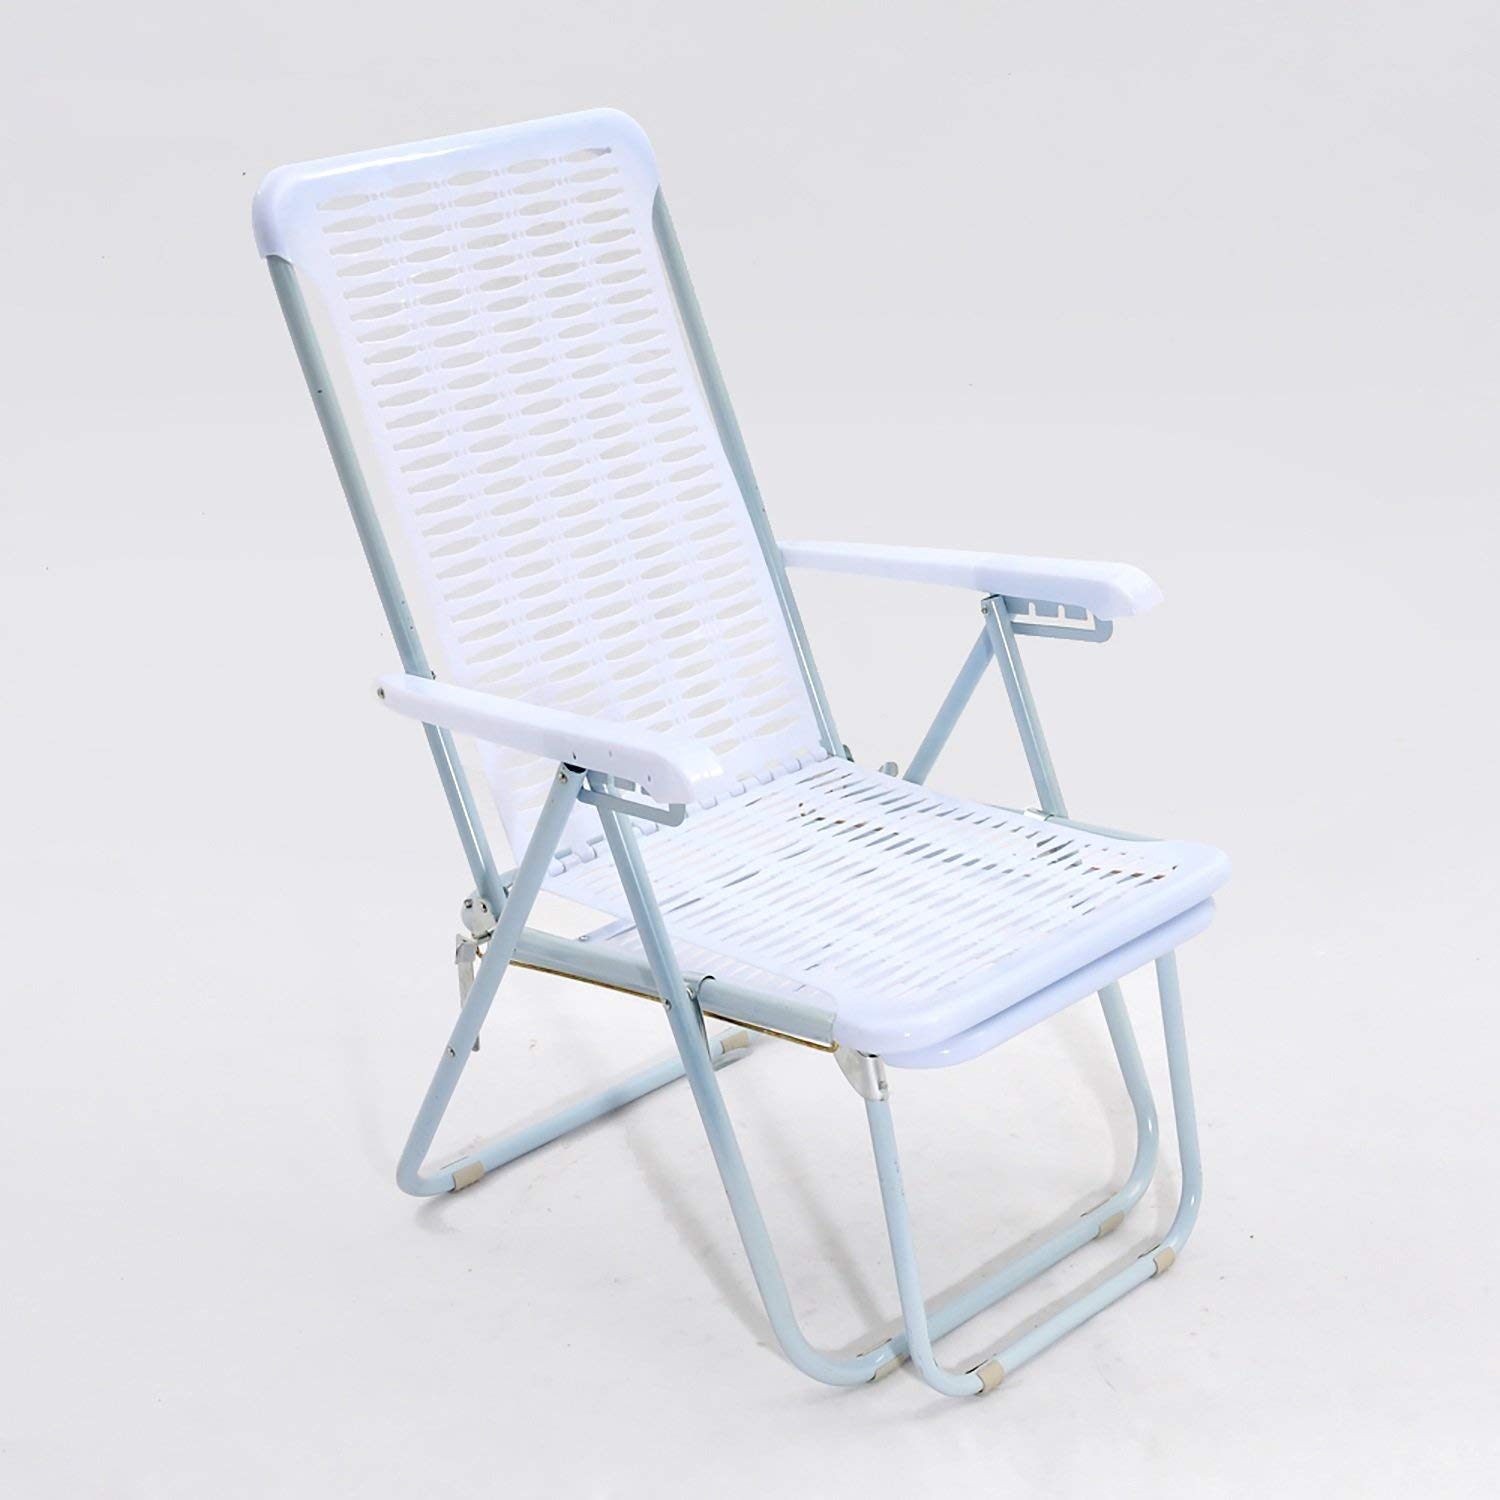 JHZDY Folding Chairs Plastic Beach Chairs Recliners Lunch Break Chairs Leisure Chairs Folding Chairs Admission Chairs